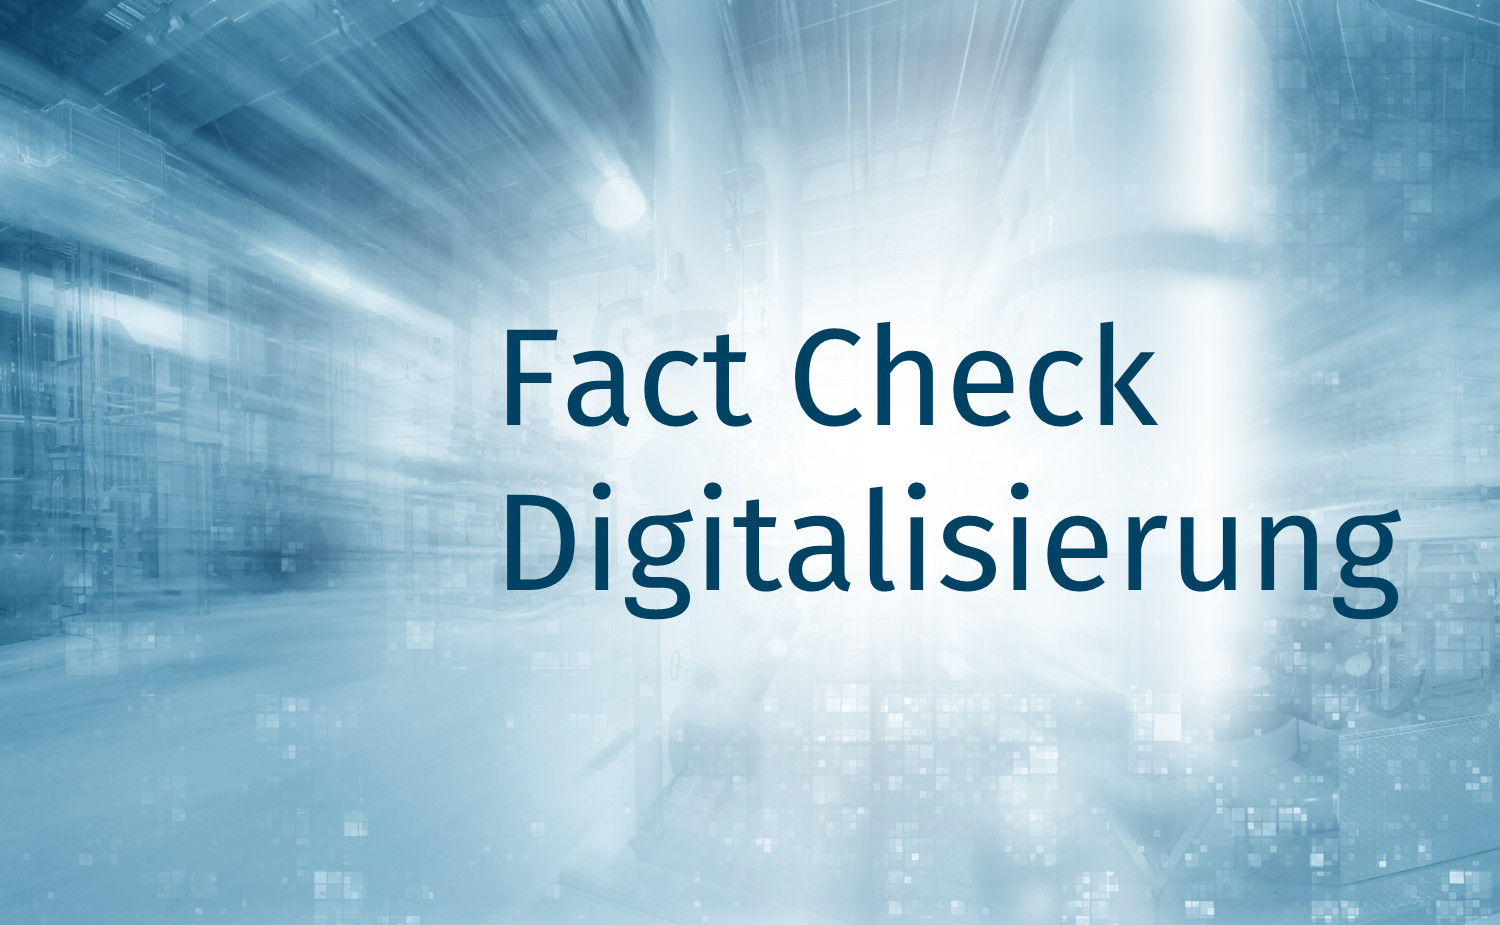 Fact Check Digitalisierung 2017